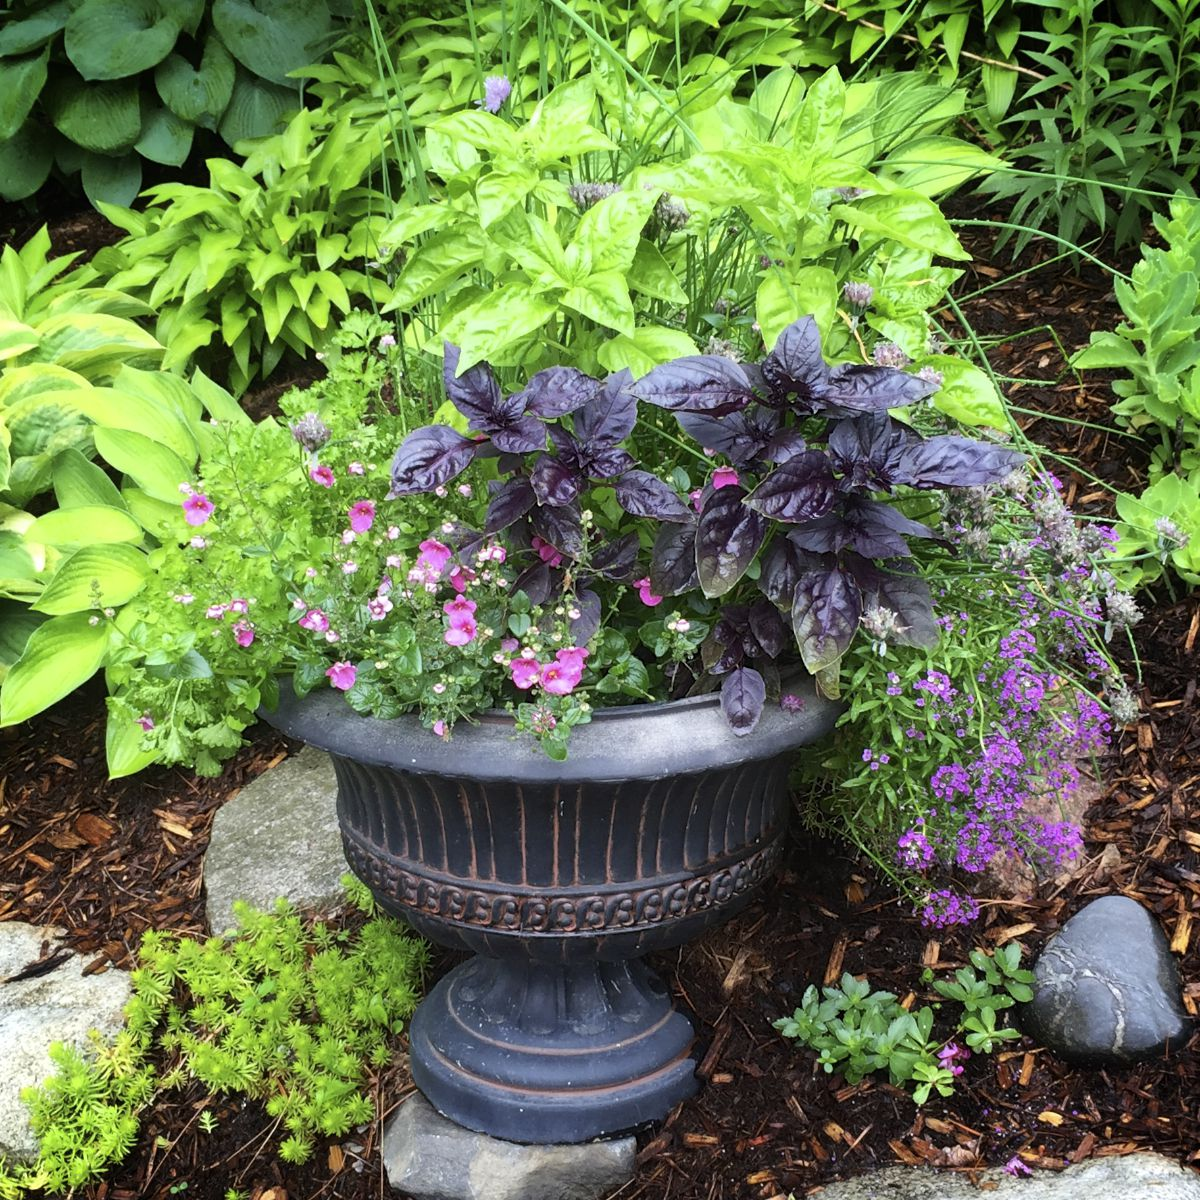 Home Design Ideas Decorating Gardening: Tips For Growing Basil In Containers